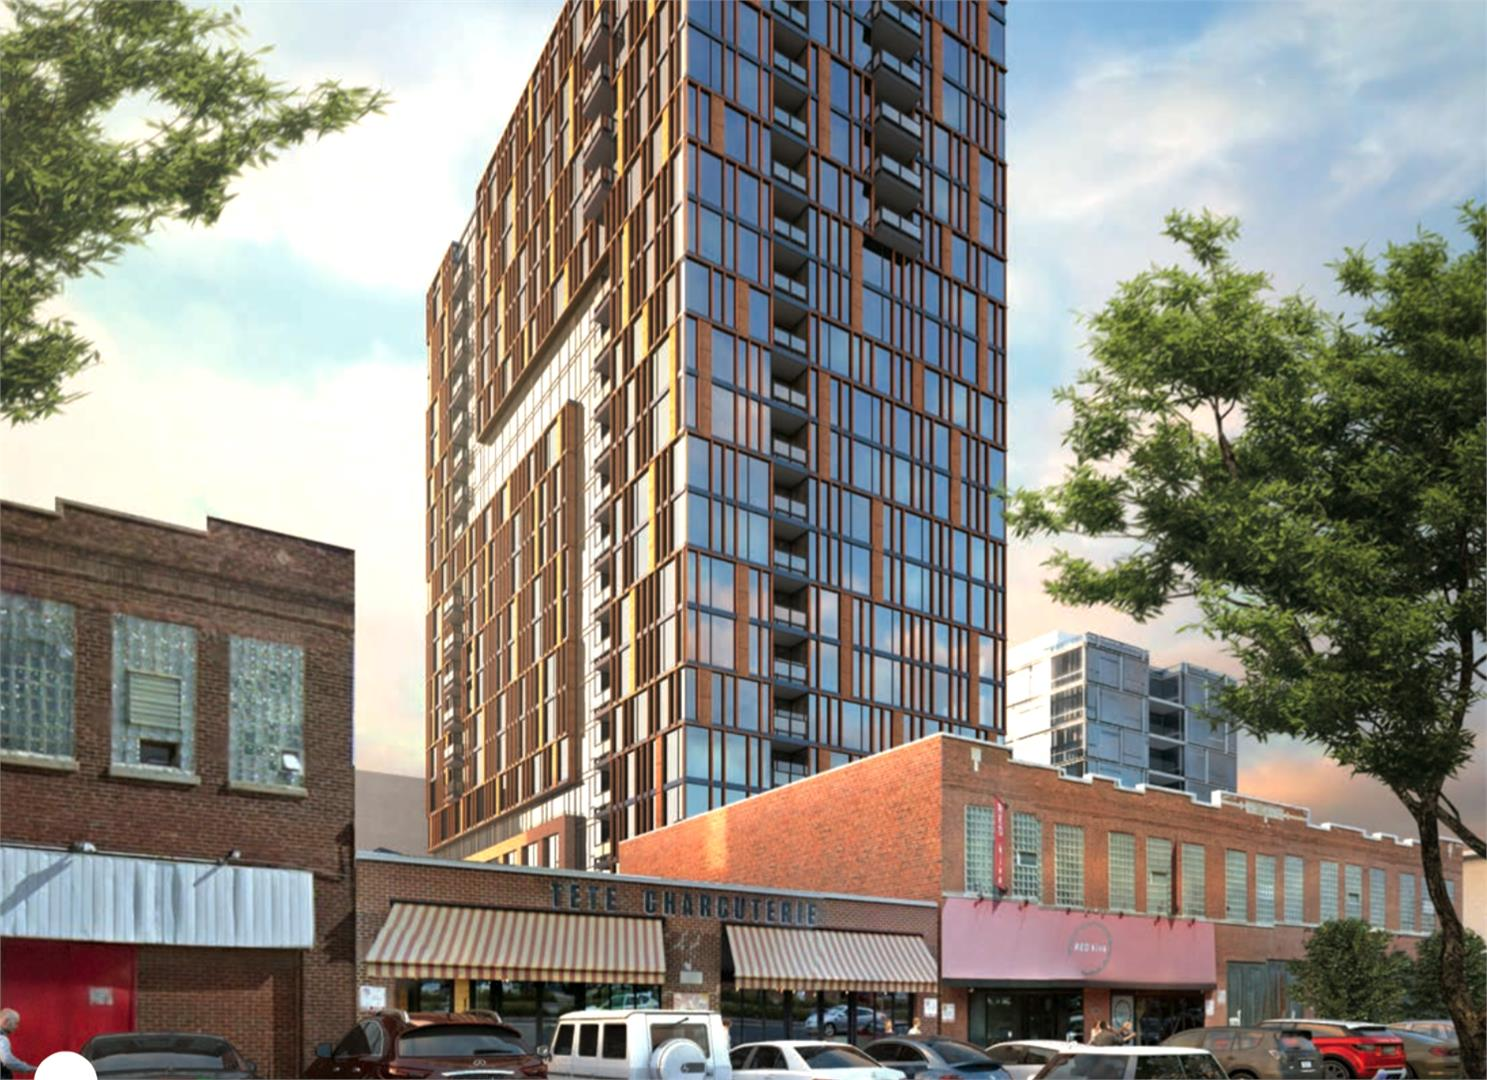 Greystar Breaks Ground on Its First Chicago Development With 223-Unit Apartment Project in Downtown Fulton Market Neighborhood